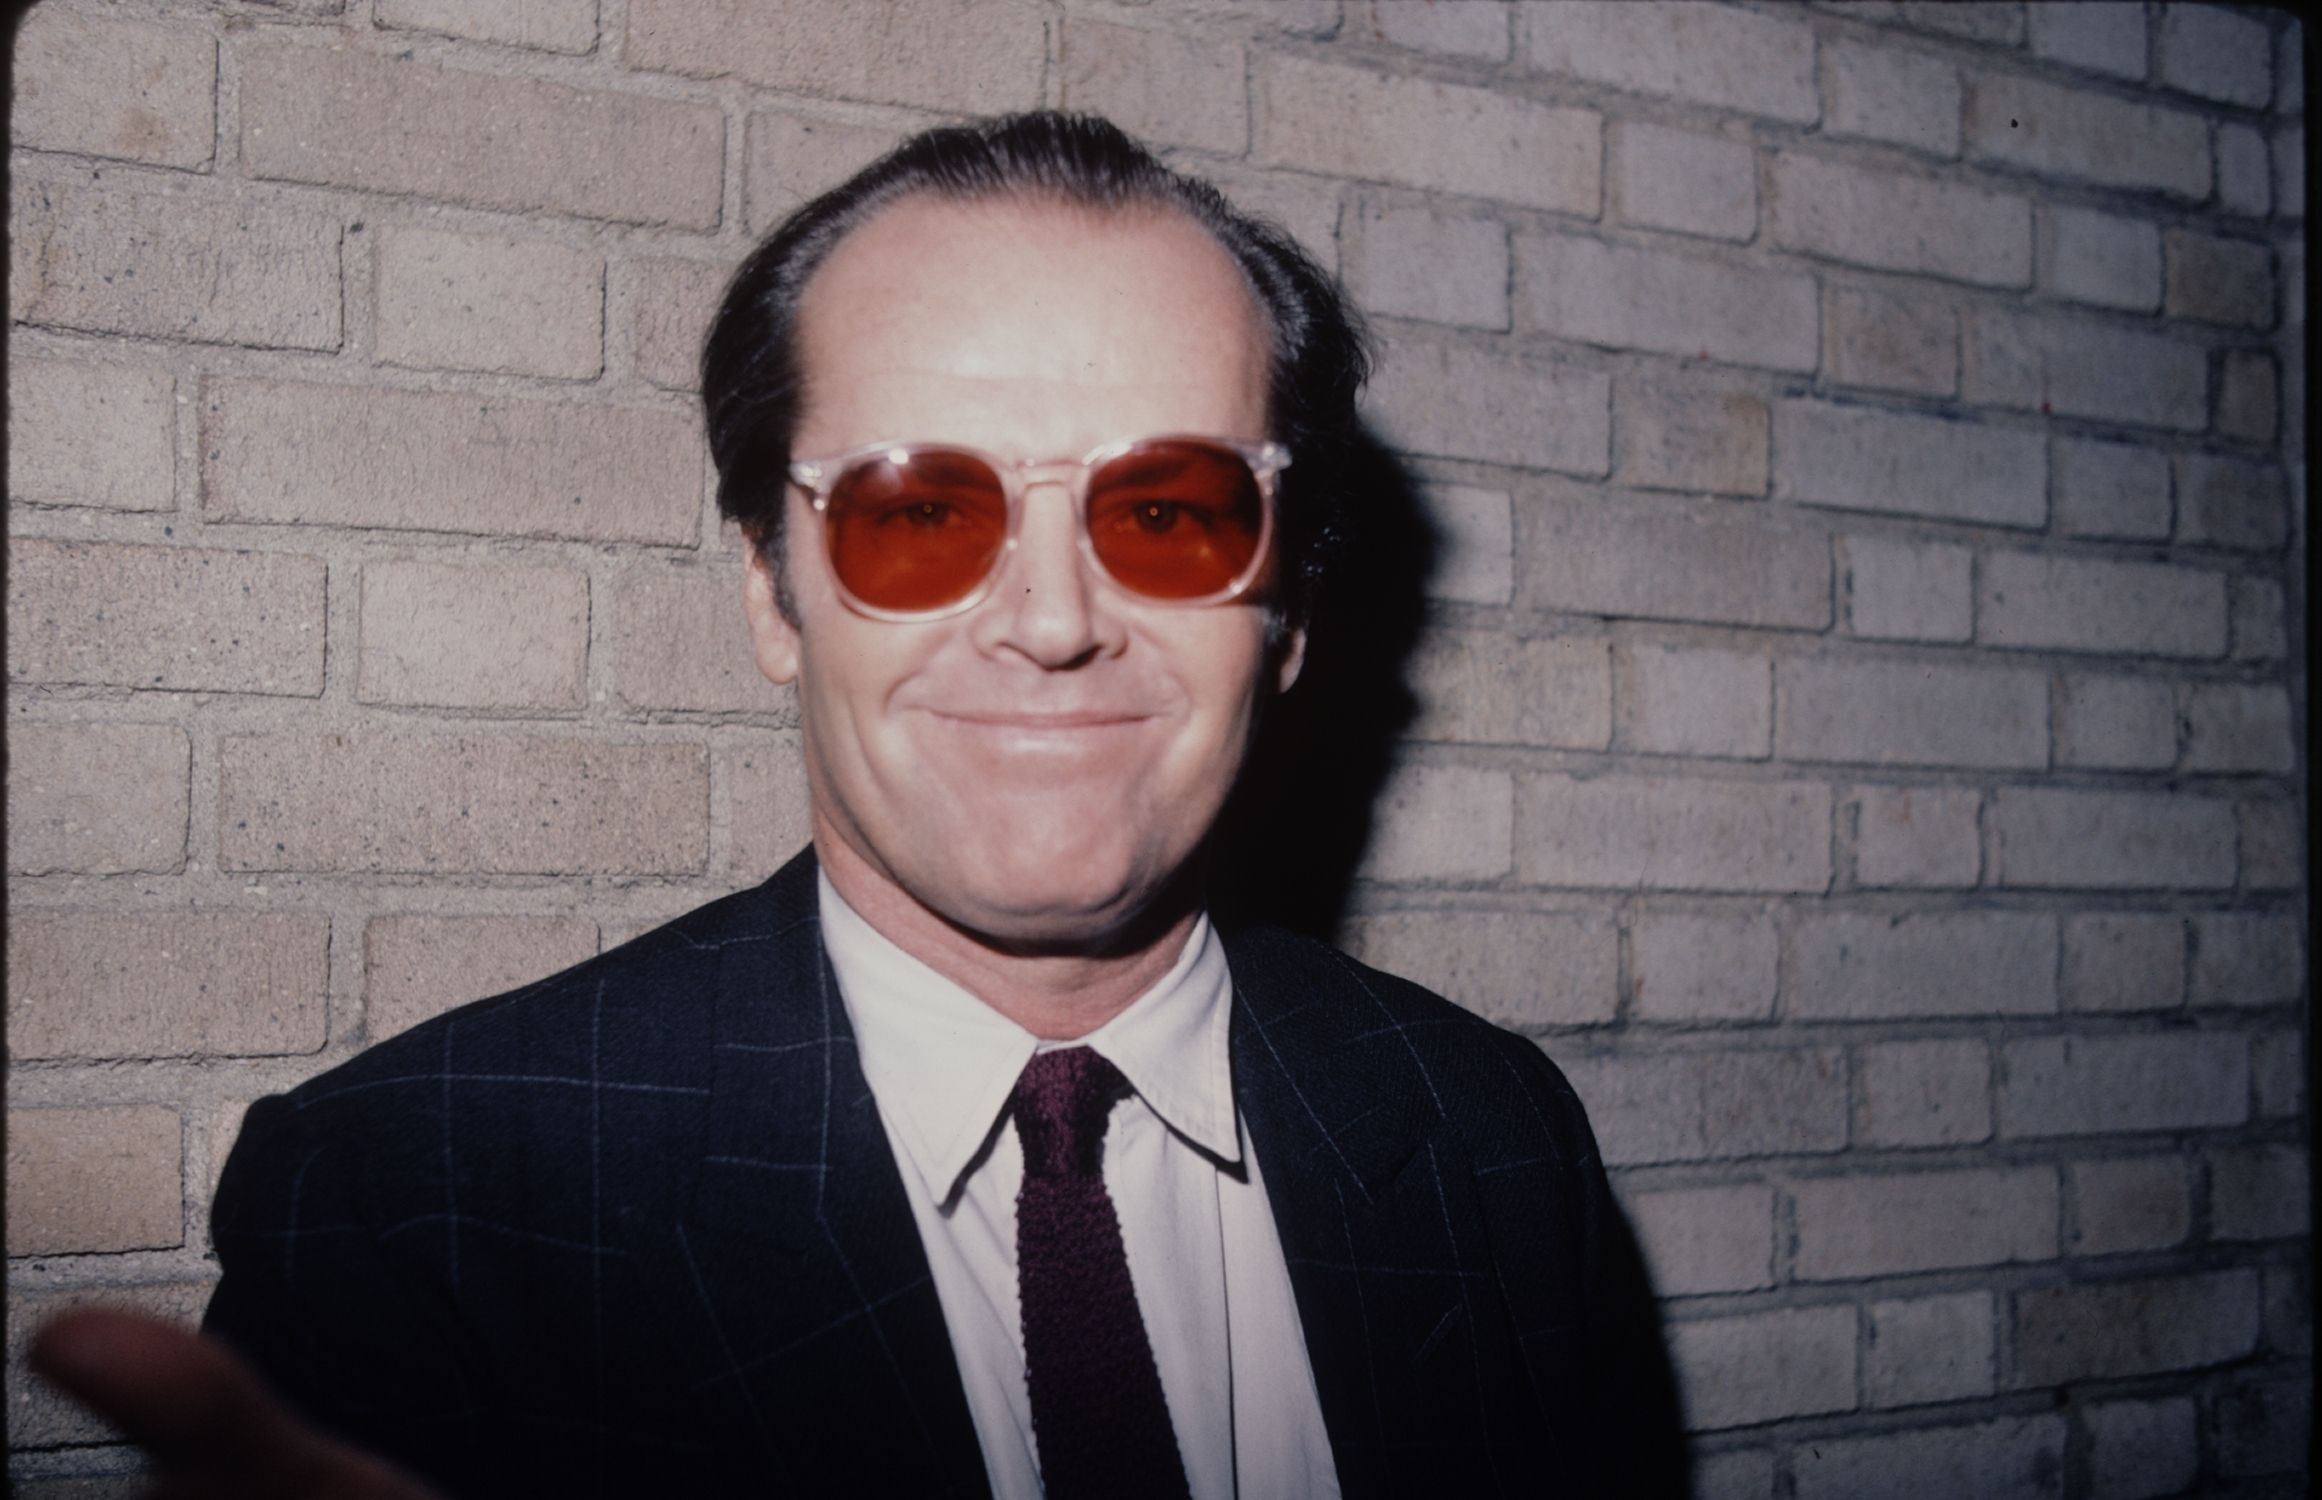 Why Does Jack Nicholson Wears Sunglasses All The Time Once a regular attendee of lakers games, jack's last appearance at the sports venue was in january 2019 with his son ray. does jack nicholson wears sunglasses